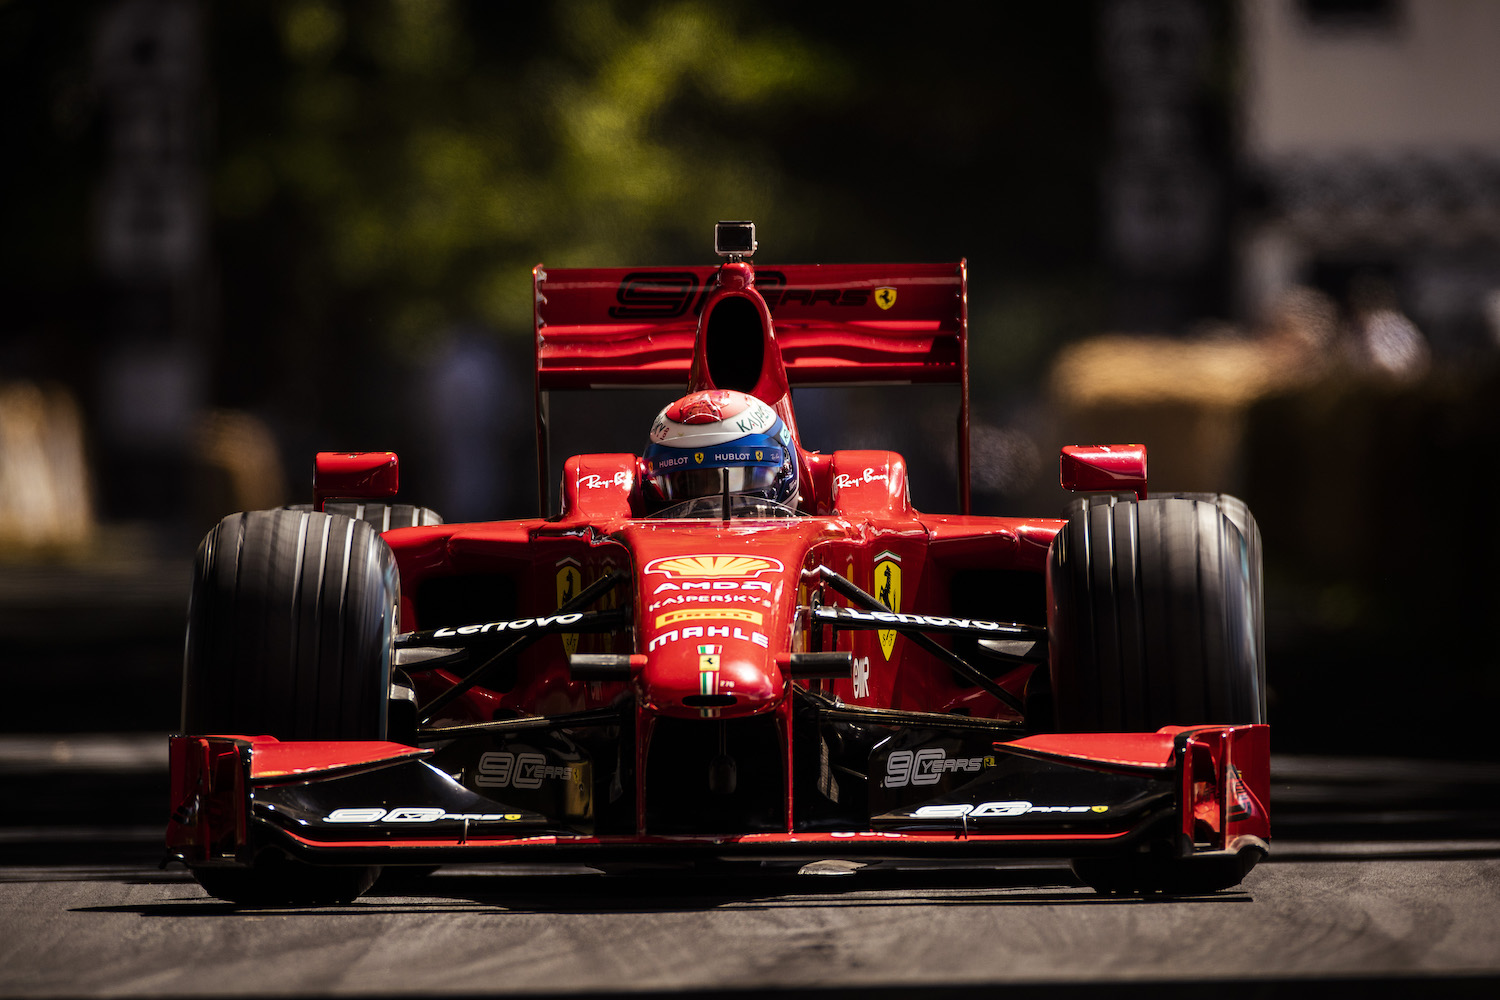 ferrari formula one race car front with driver in cockpit